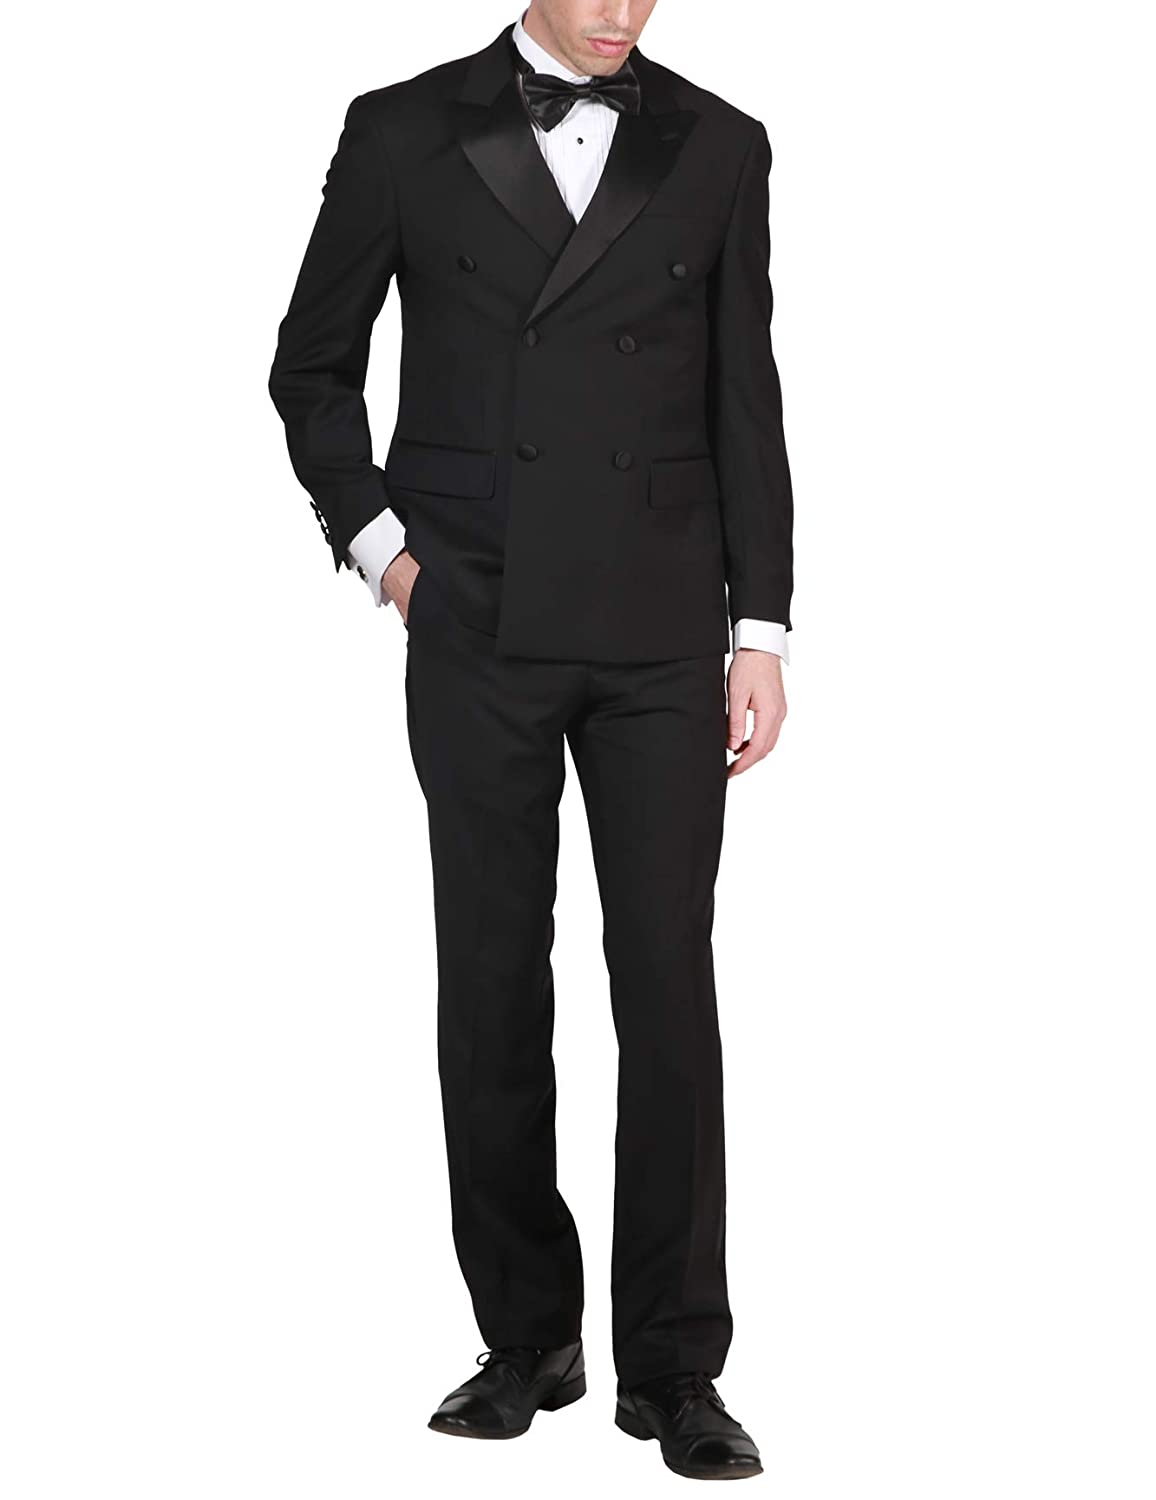 Adam Baker Mens Formal Regular Fit 2-Piece Double Breasted Peak Lapel 100/% Wool Tuxedo